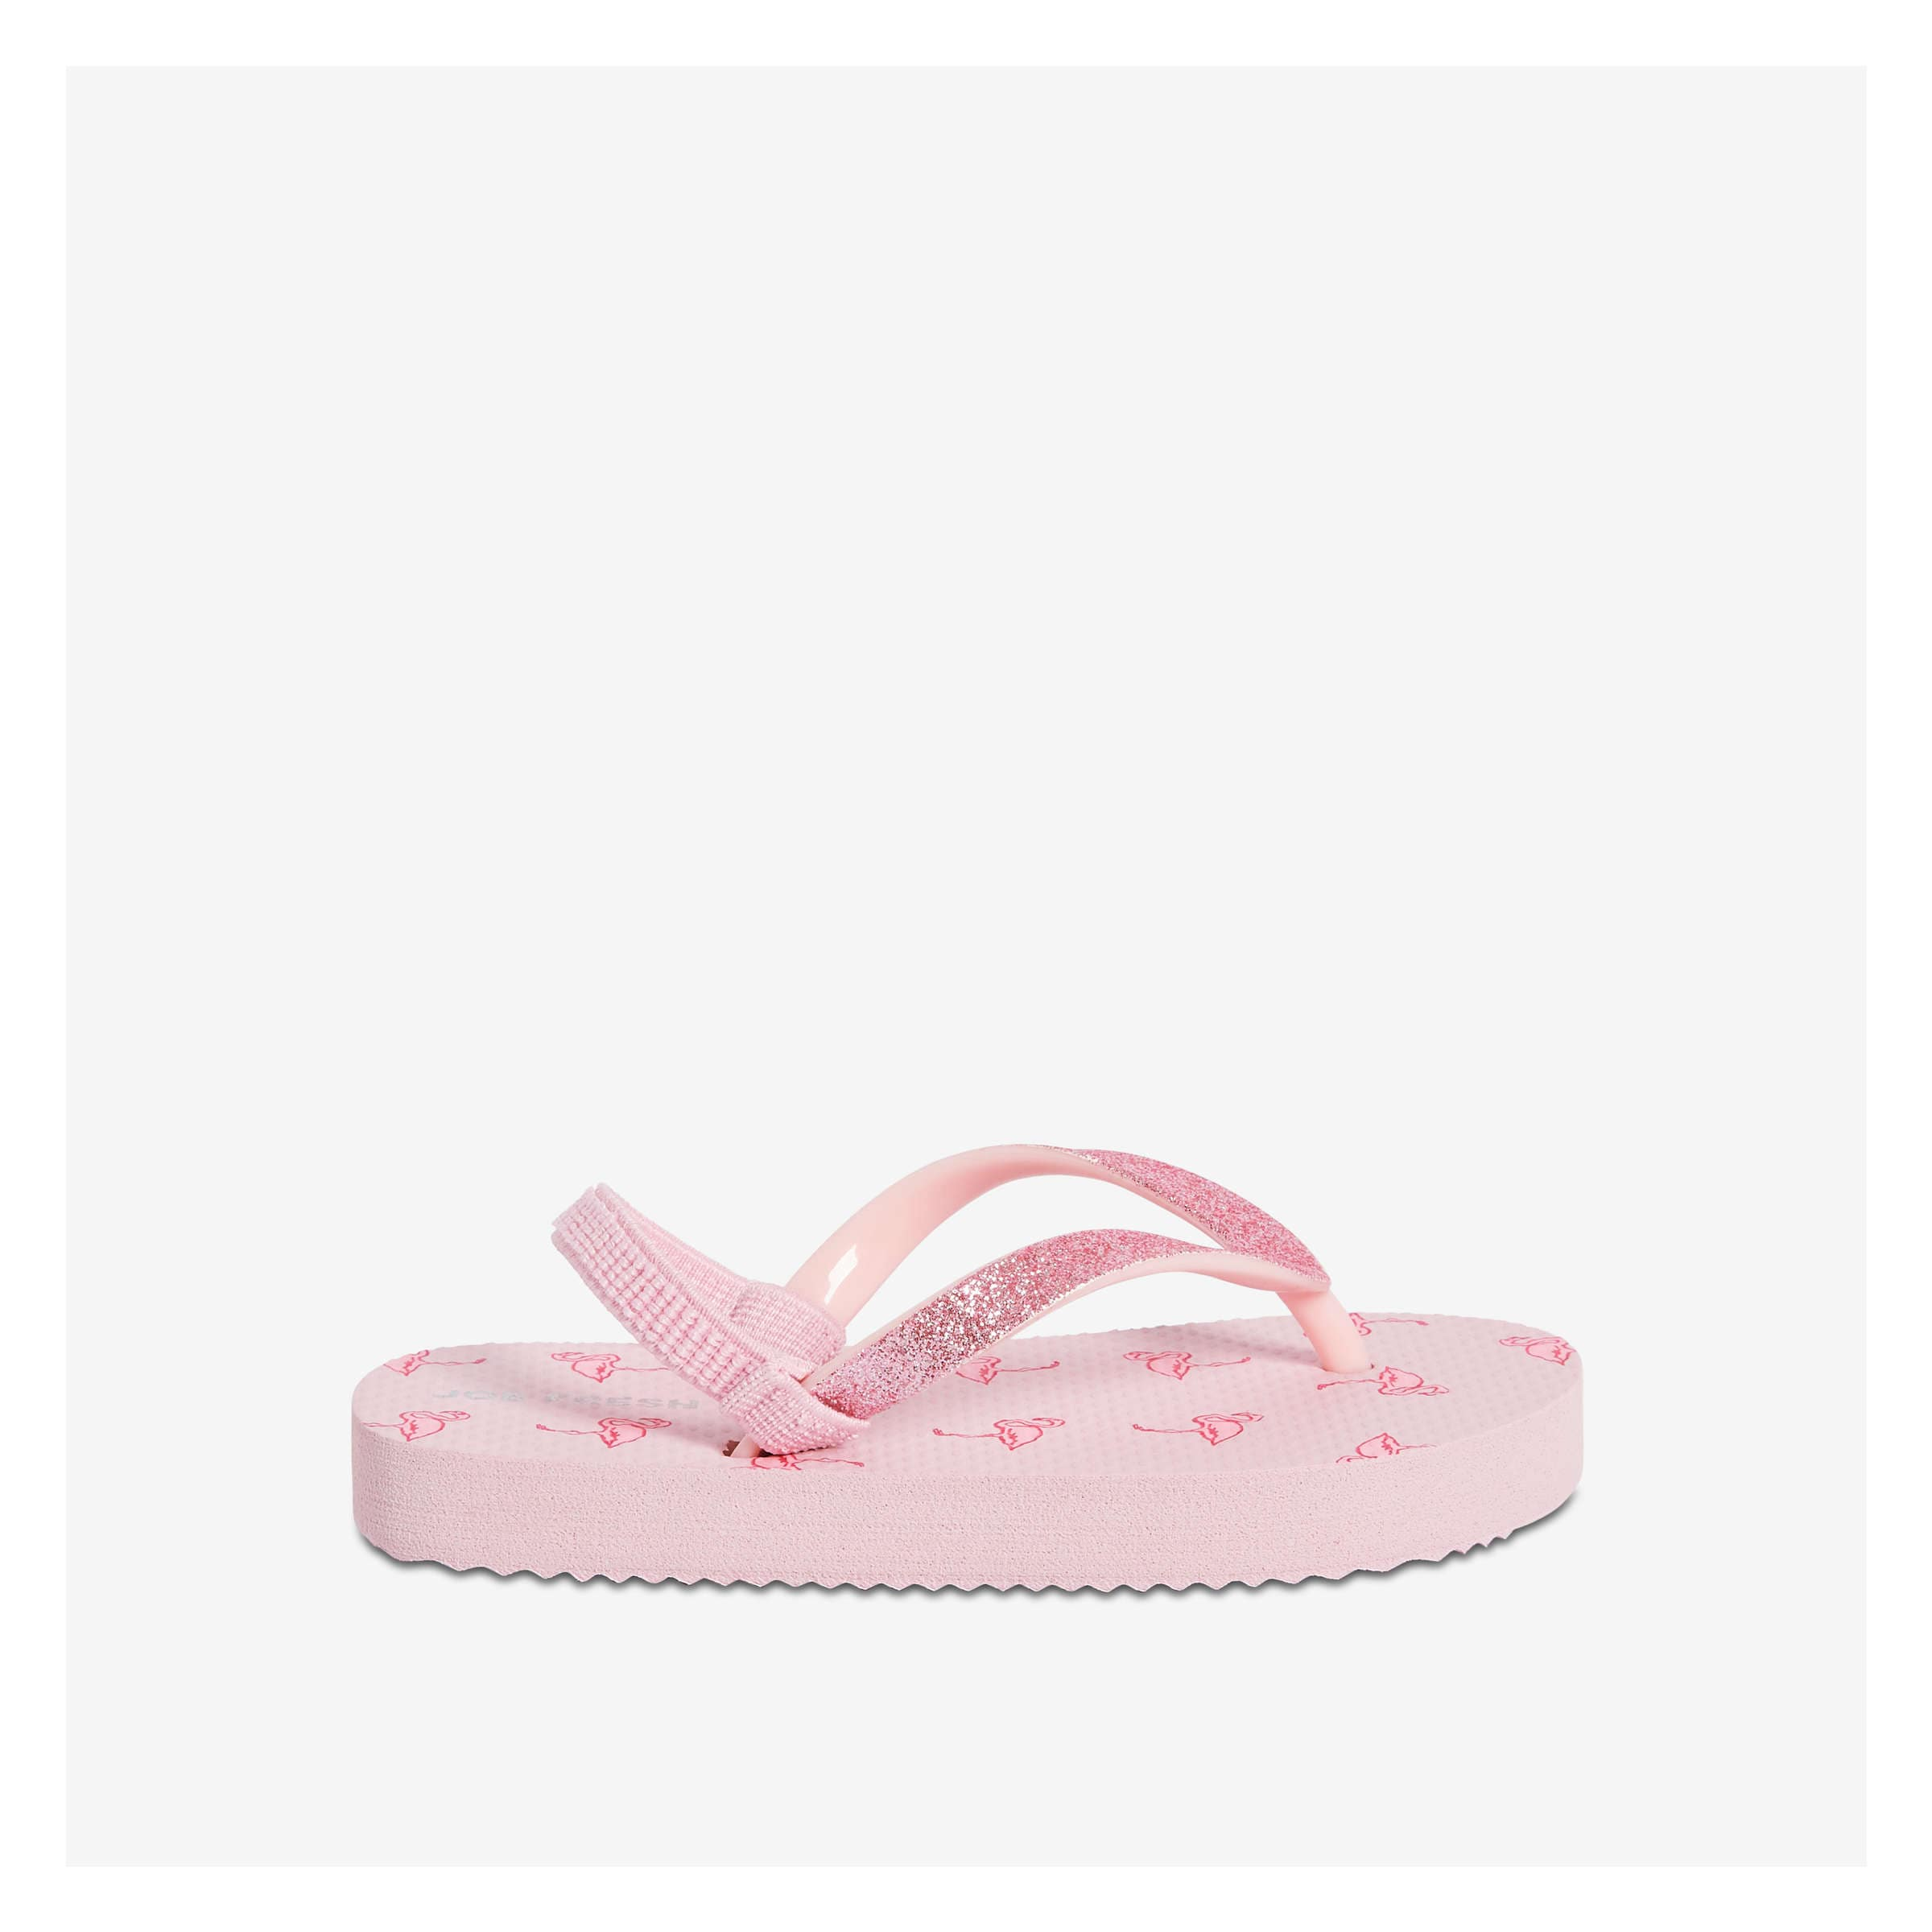 1ca09a32ada4 Toddler Girls  Ankle Strap Flip Flops in Light Pink from Joe Fresh